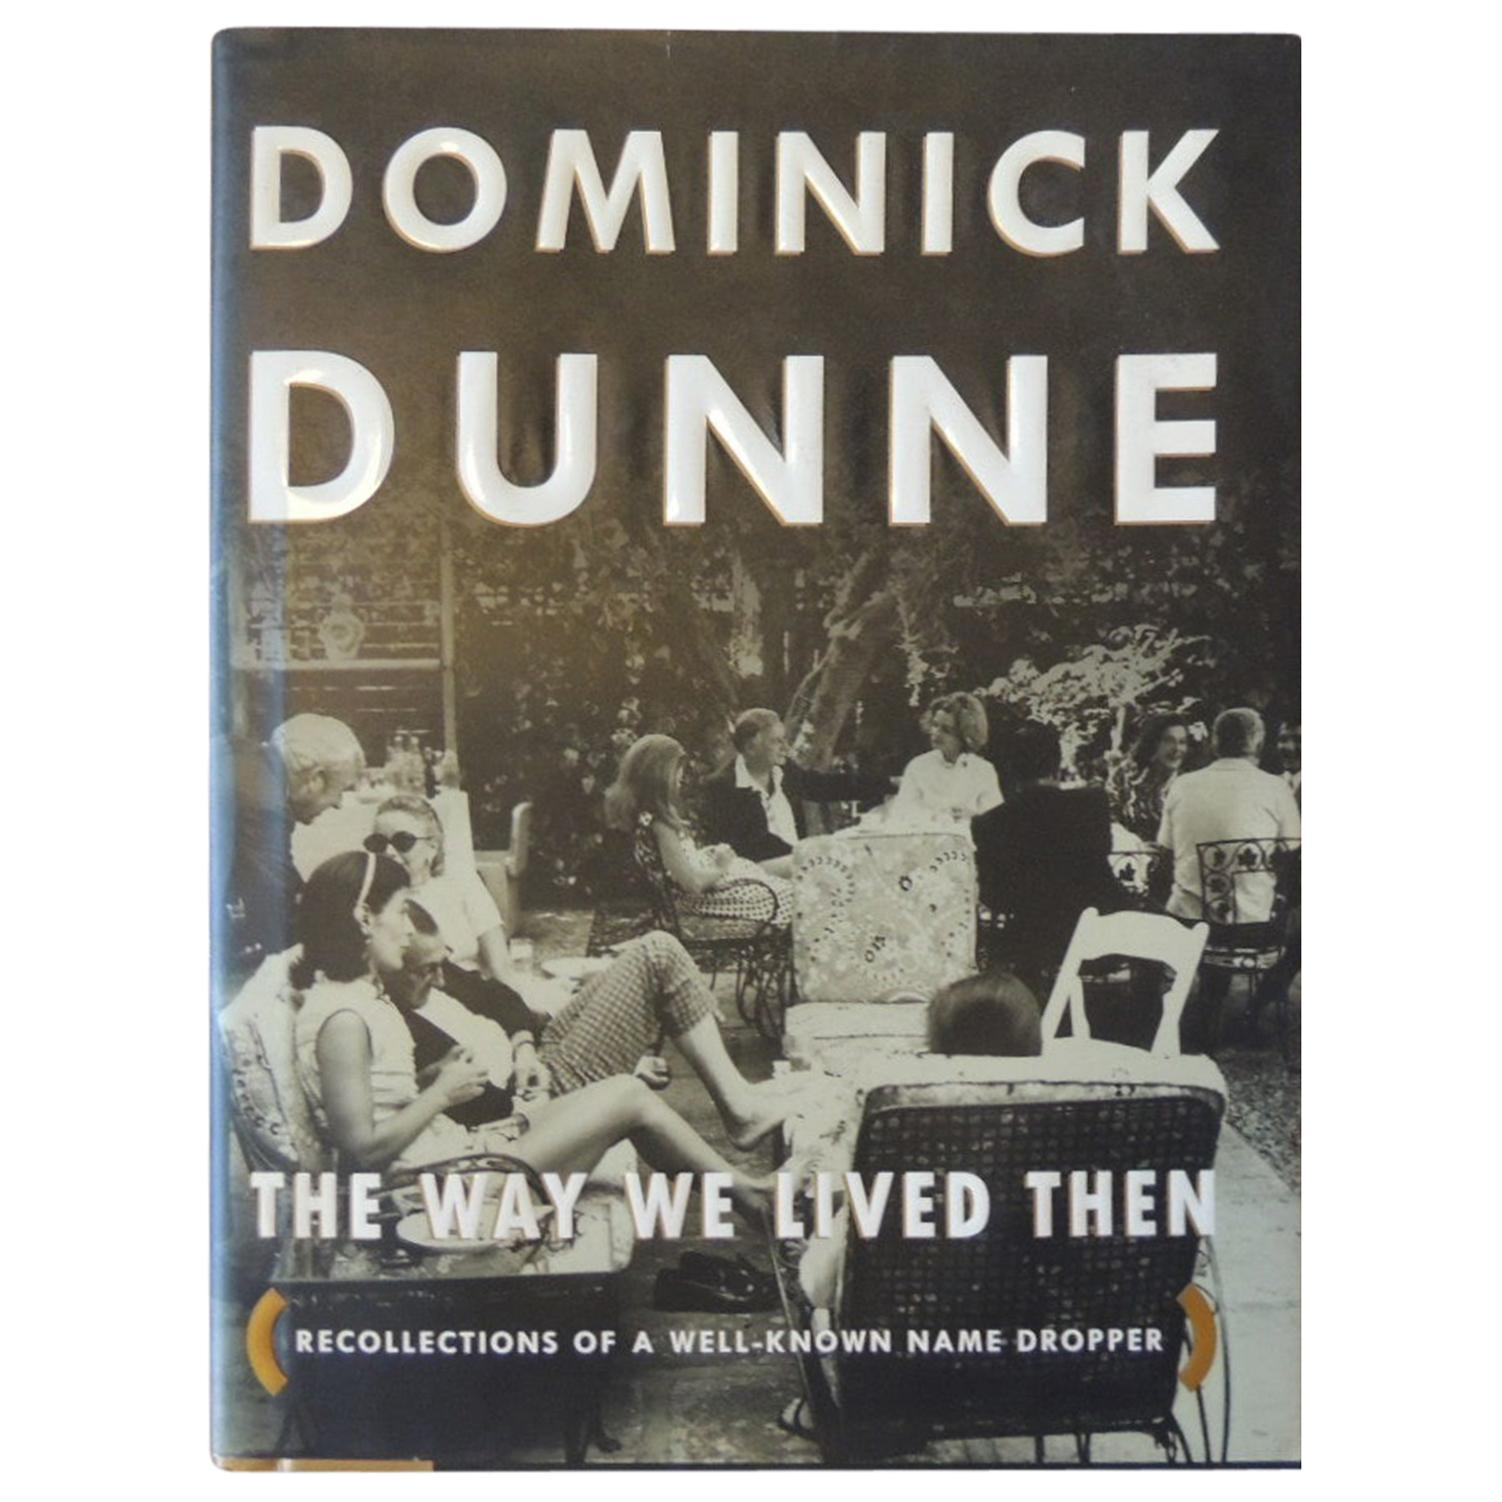 The Way We Lived Then Recollections of a Well-Known Name Dropper Hardcover Book